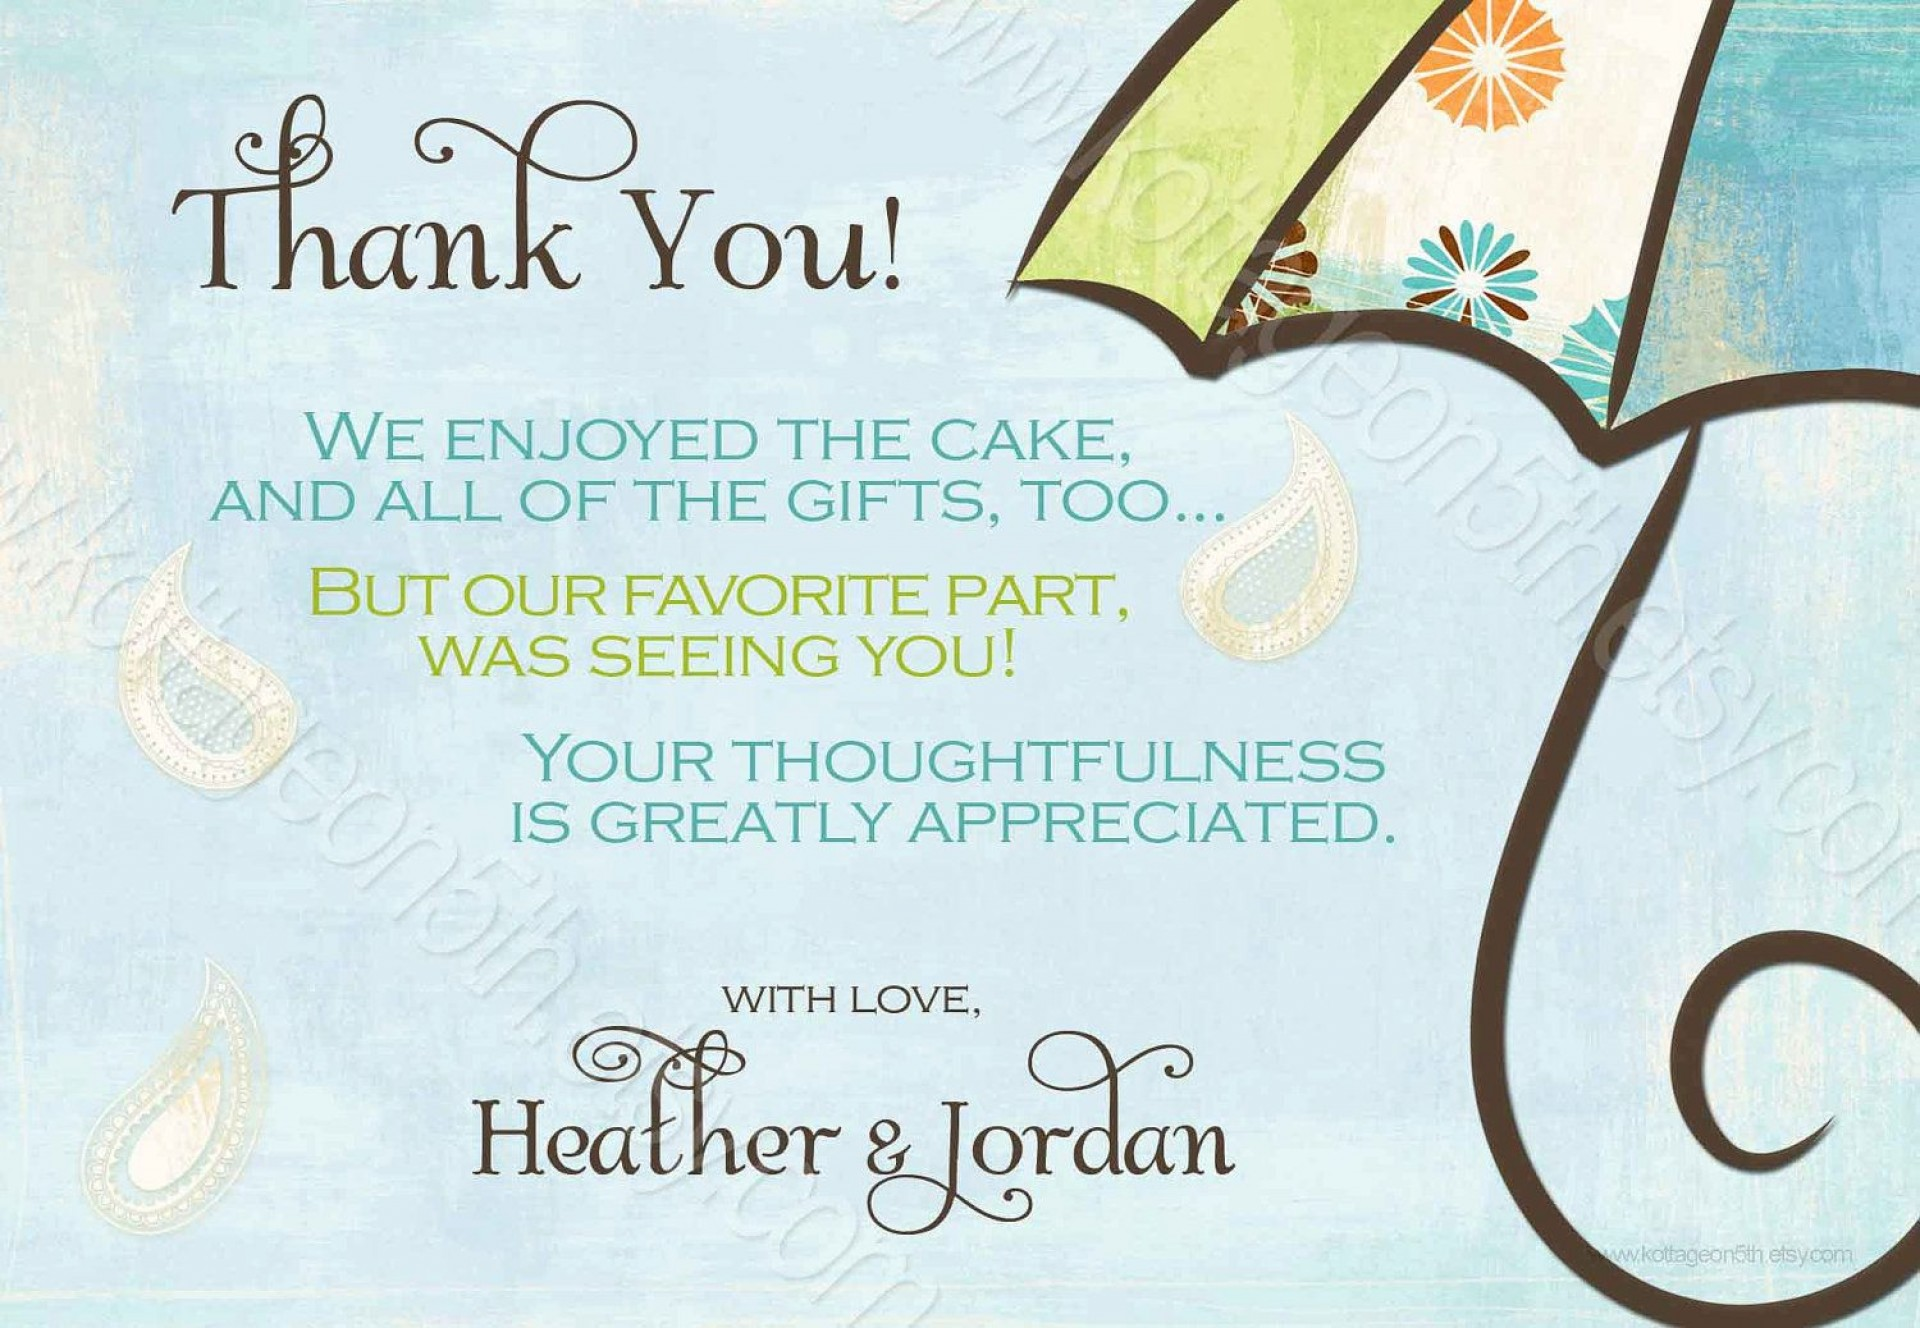 009 Awesome Thank You Note Template Baby Shower Sample  Card Free For Letter Gift1920